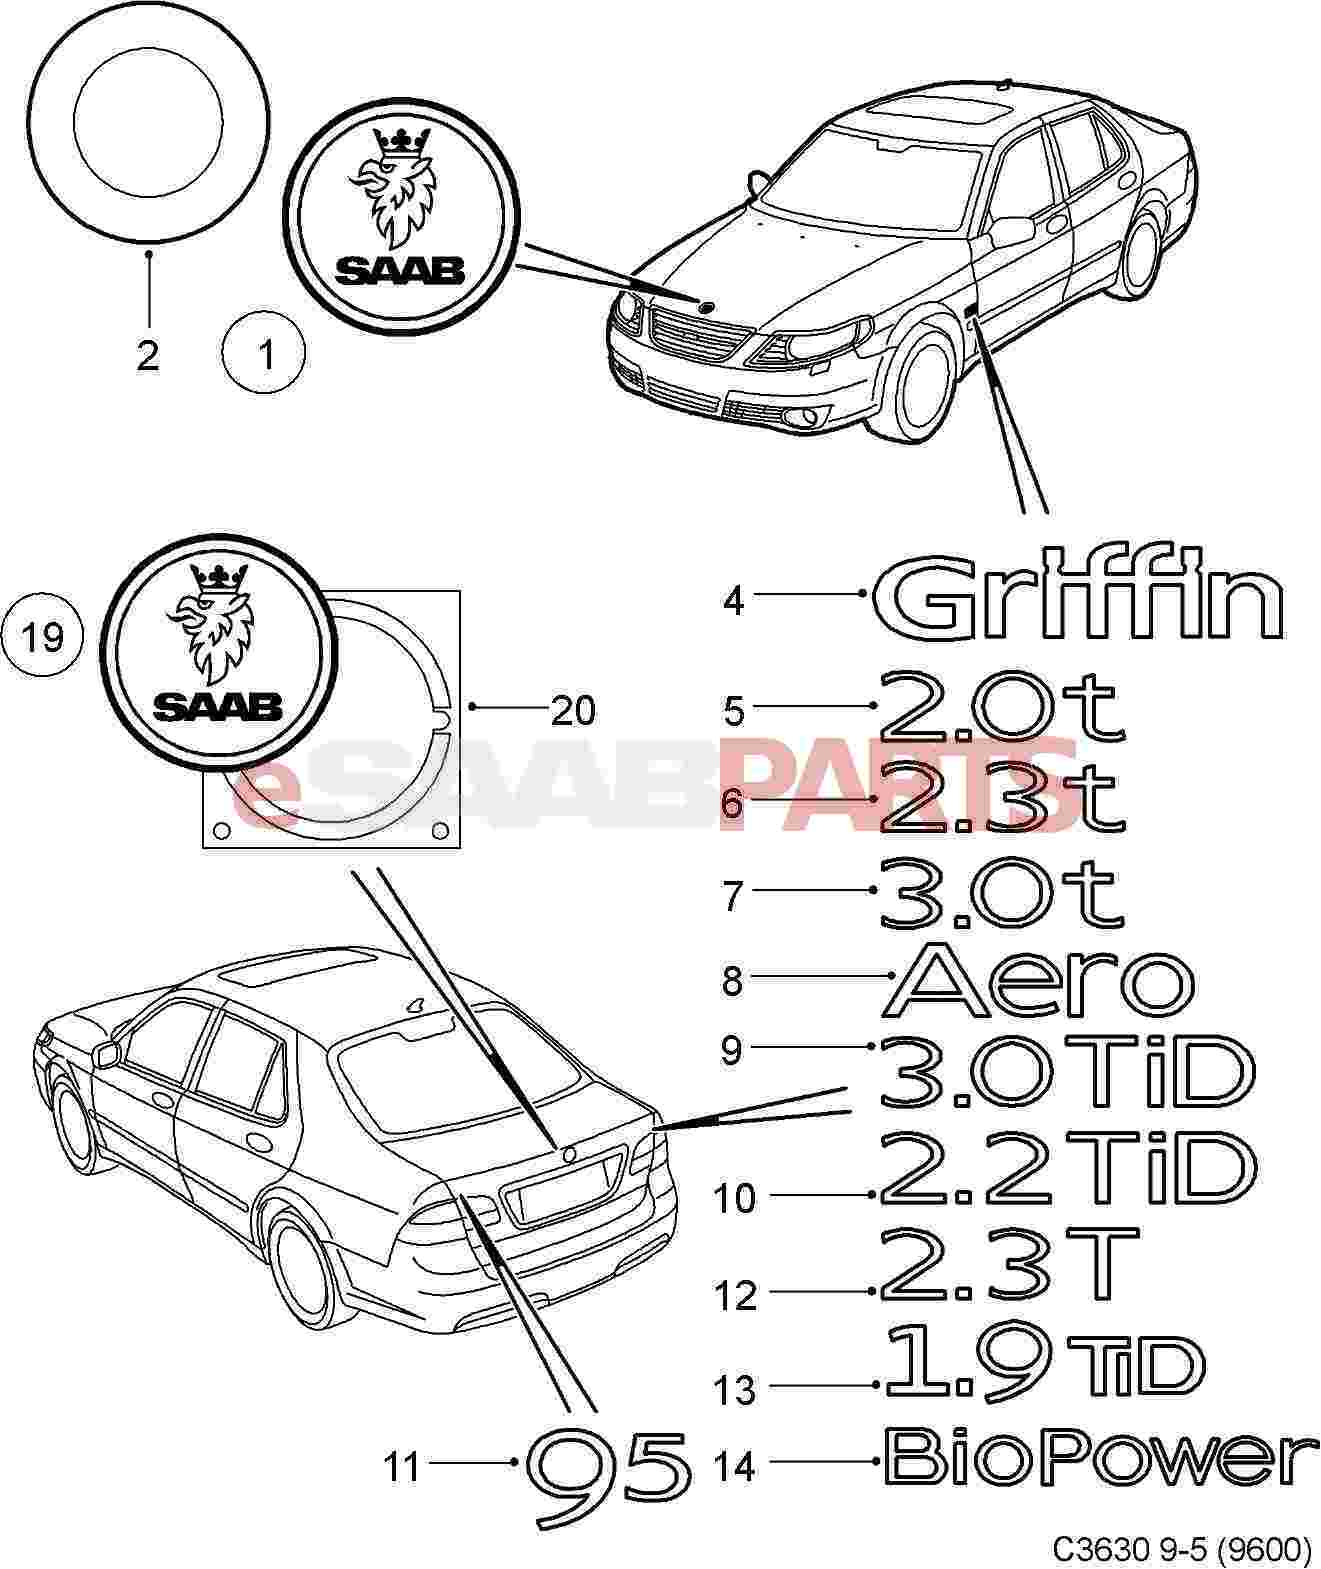 Saab 95 Turbo Diagram